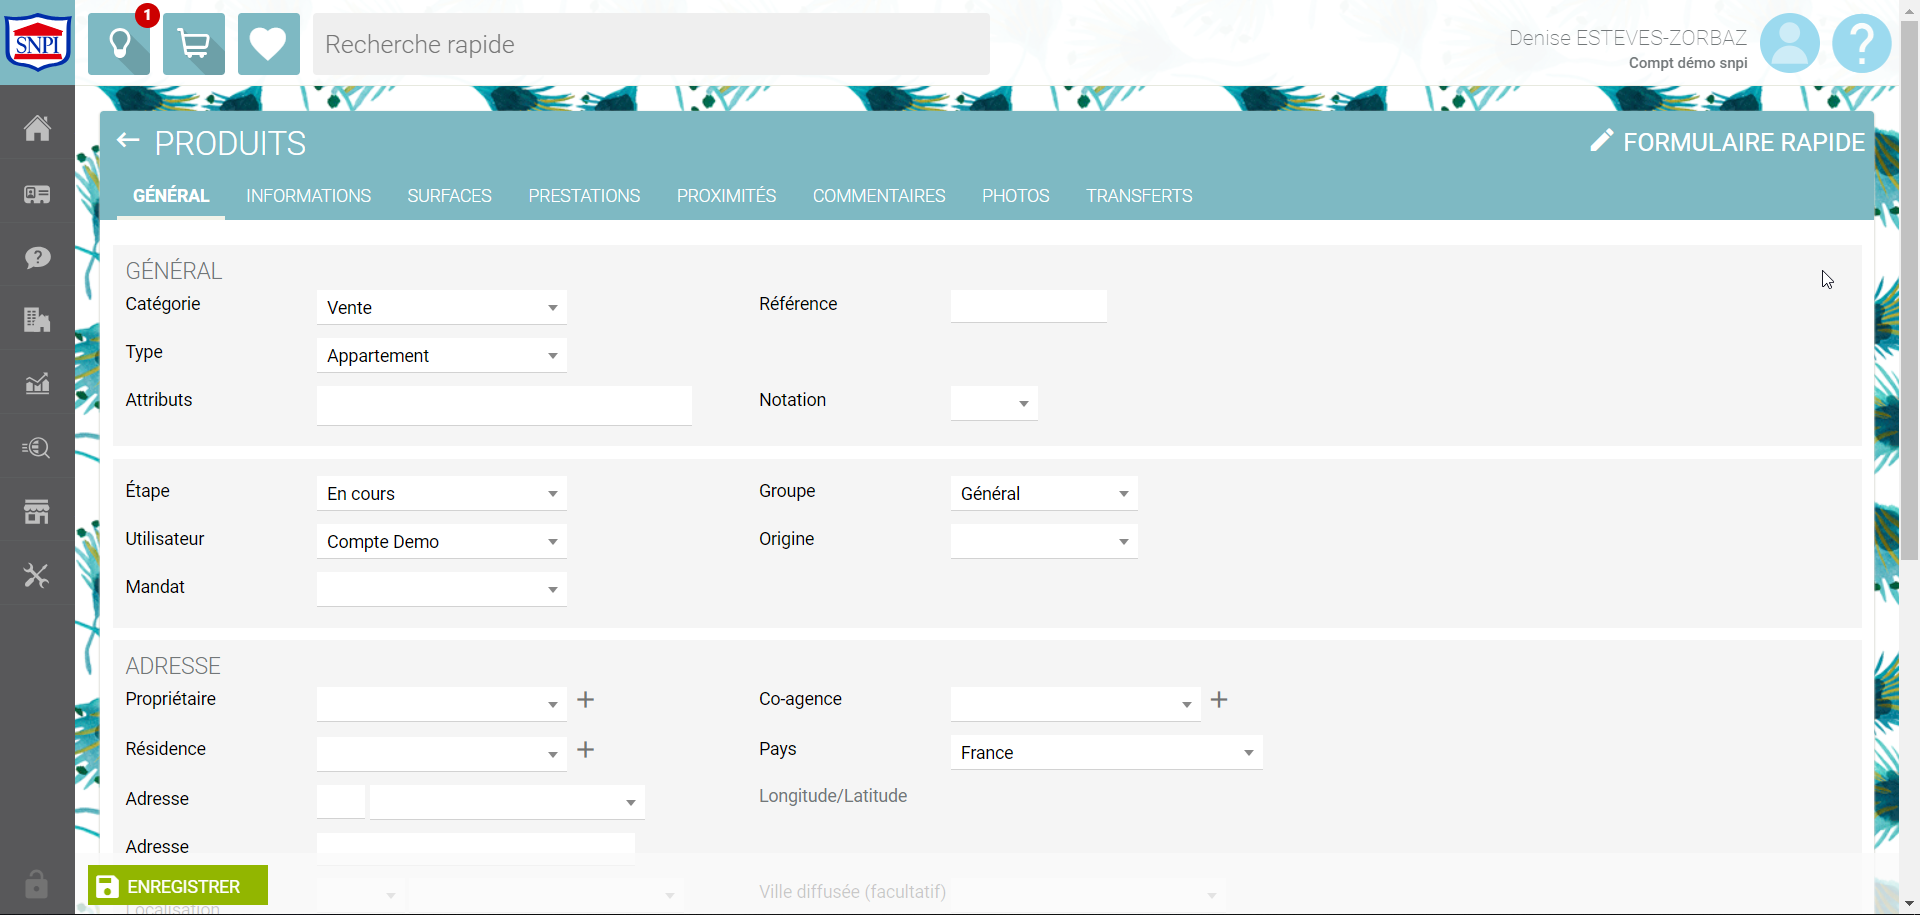 L'interface du logiciel SNPI ACCESS